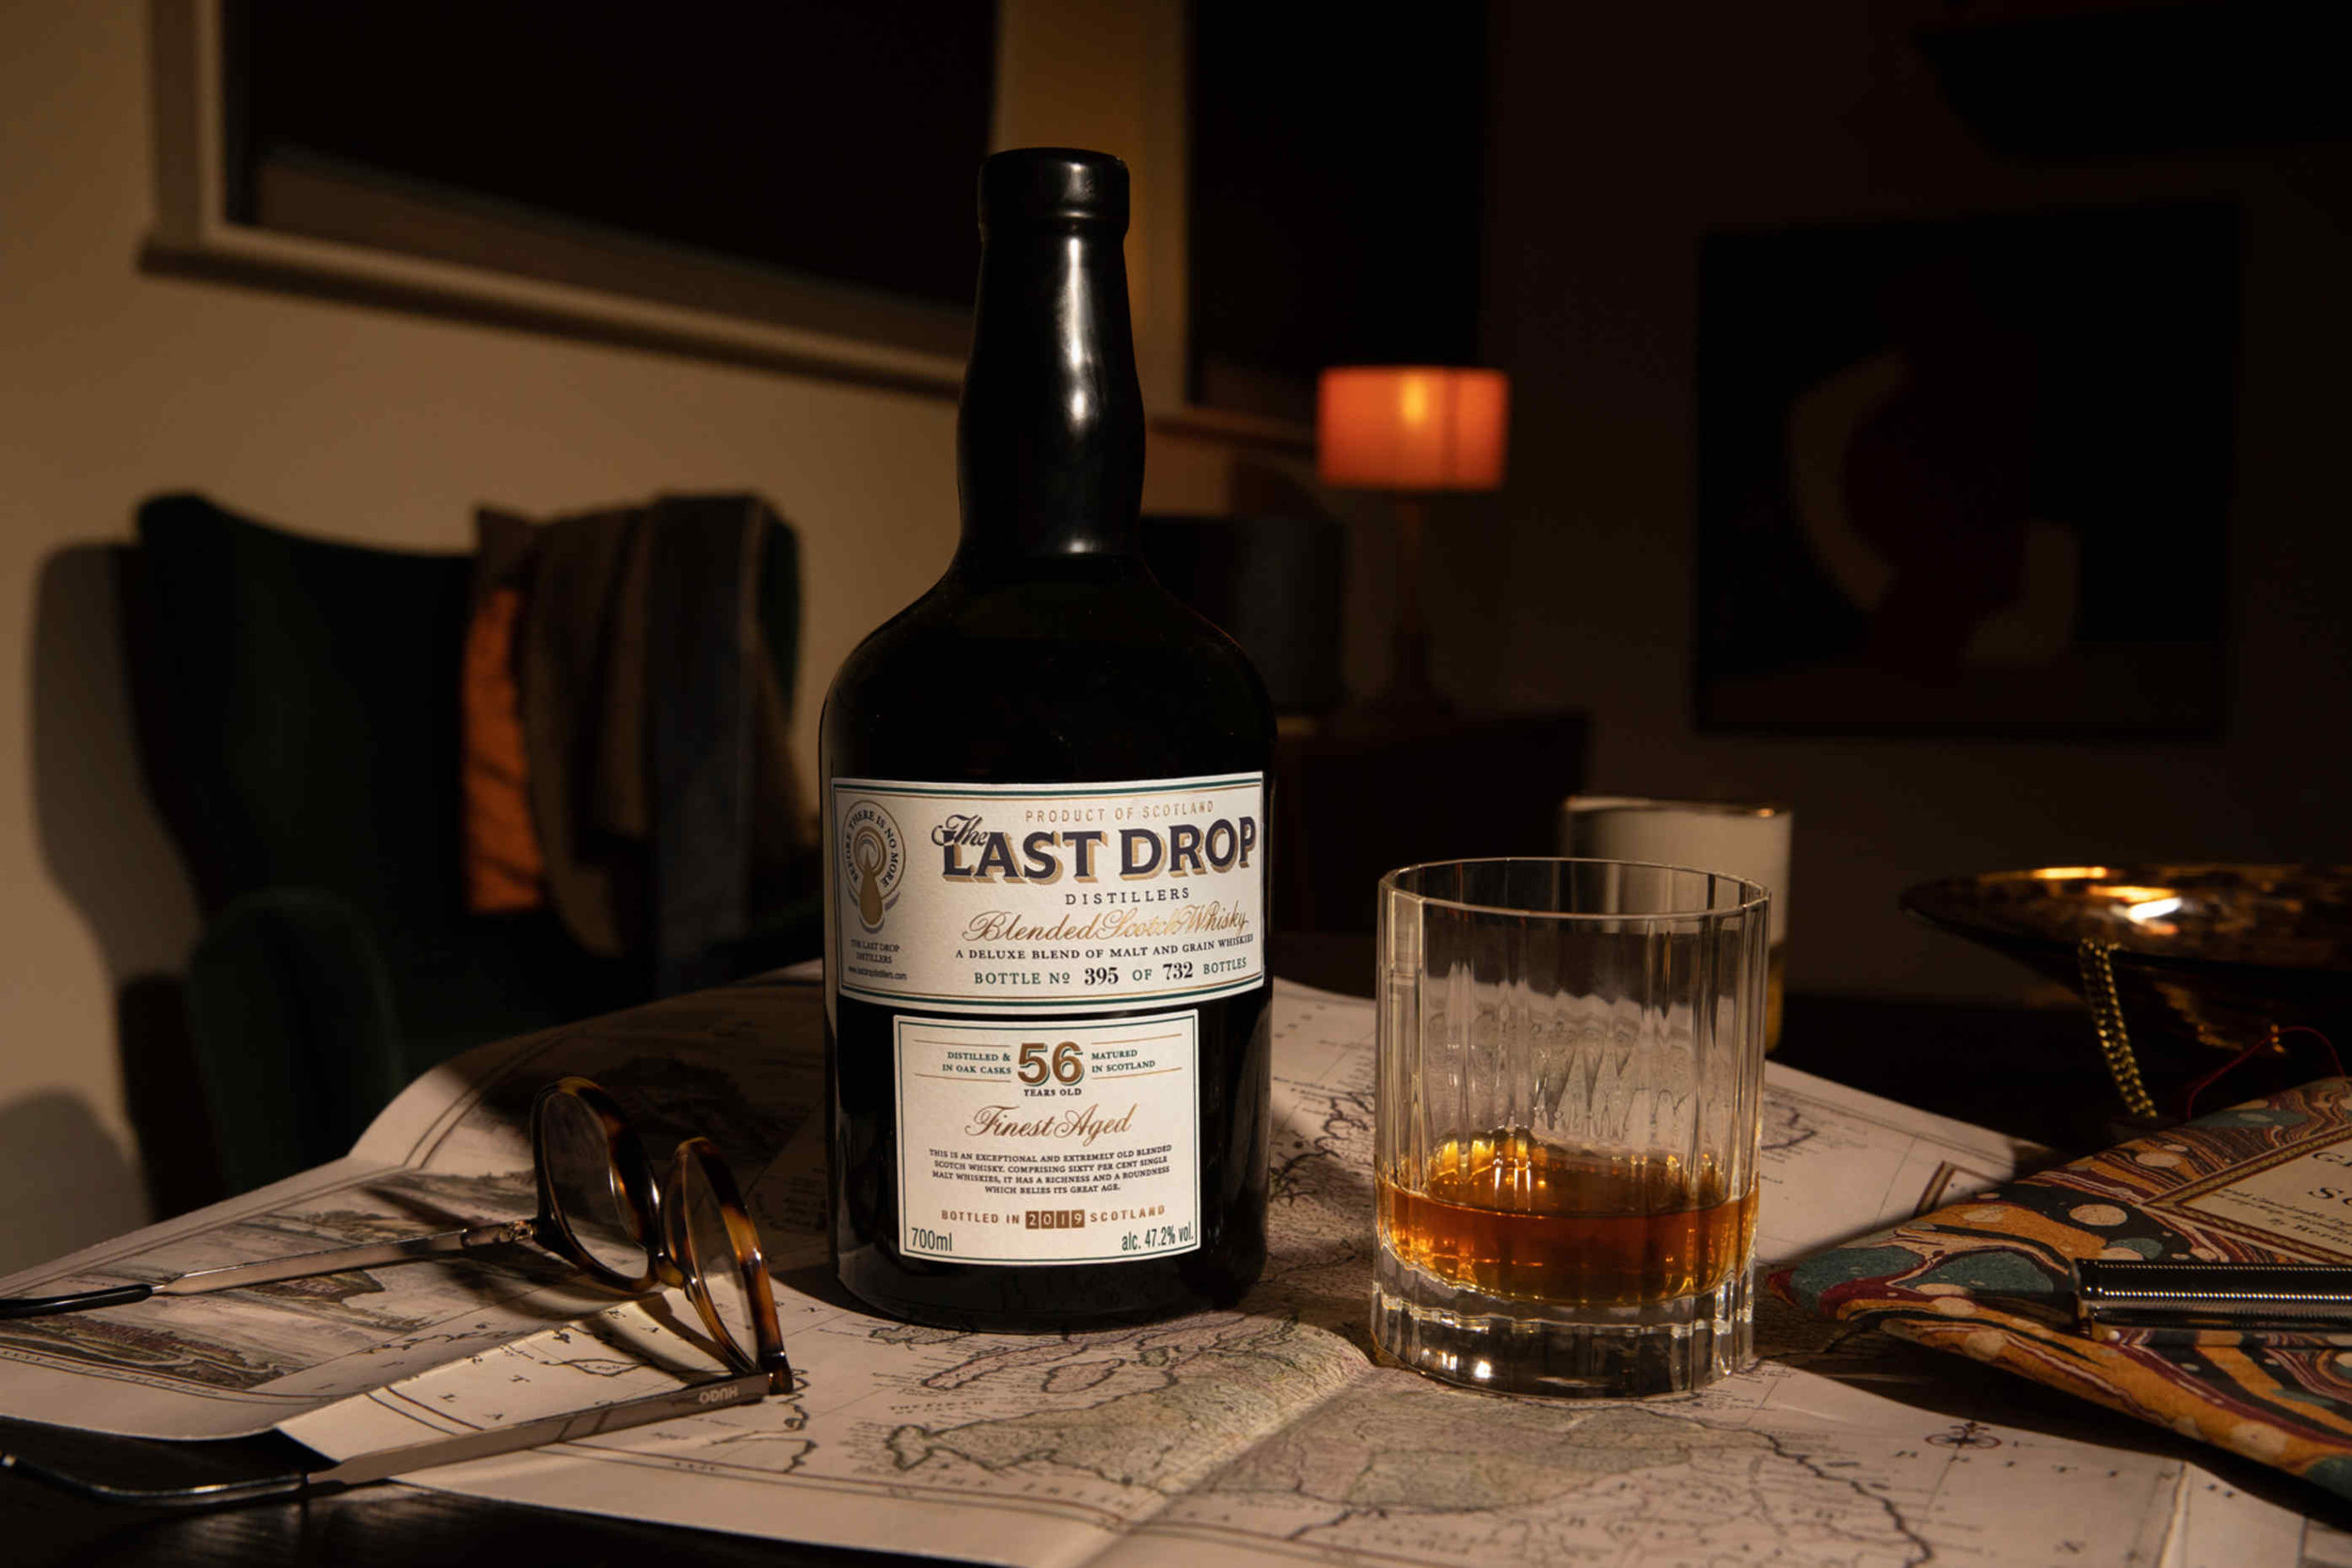 The 56 Year Old Blended Scotch Whisky is The Last Drop Distillers' 16th release